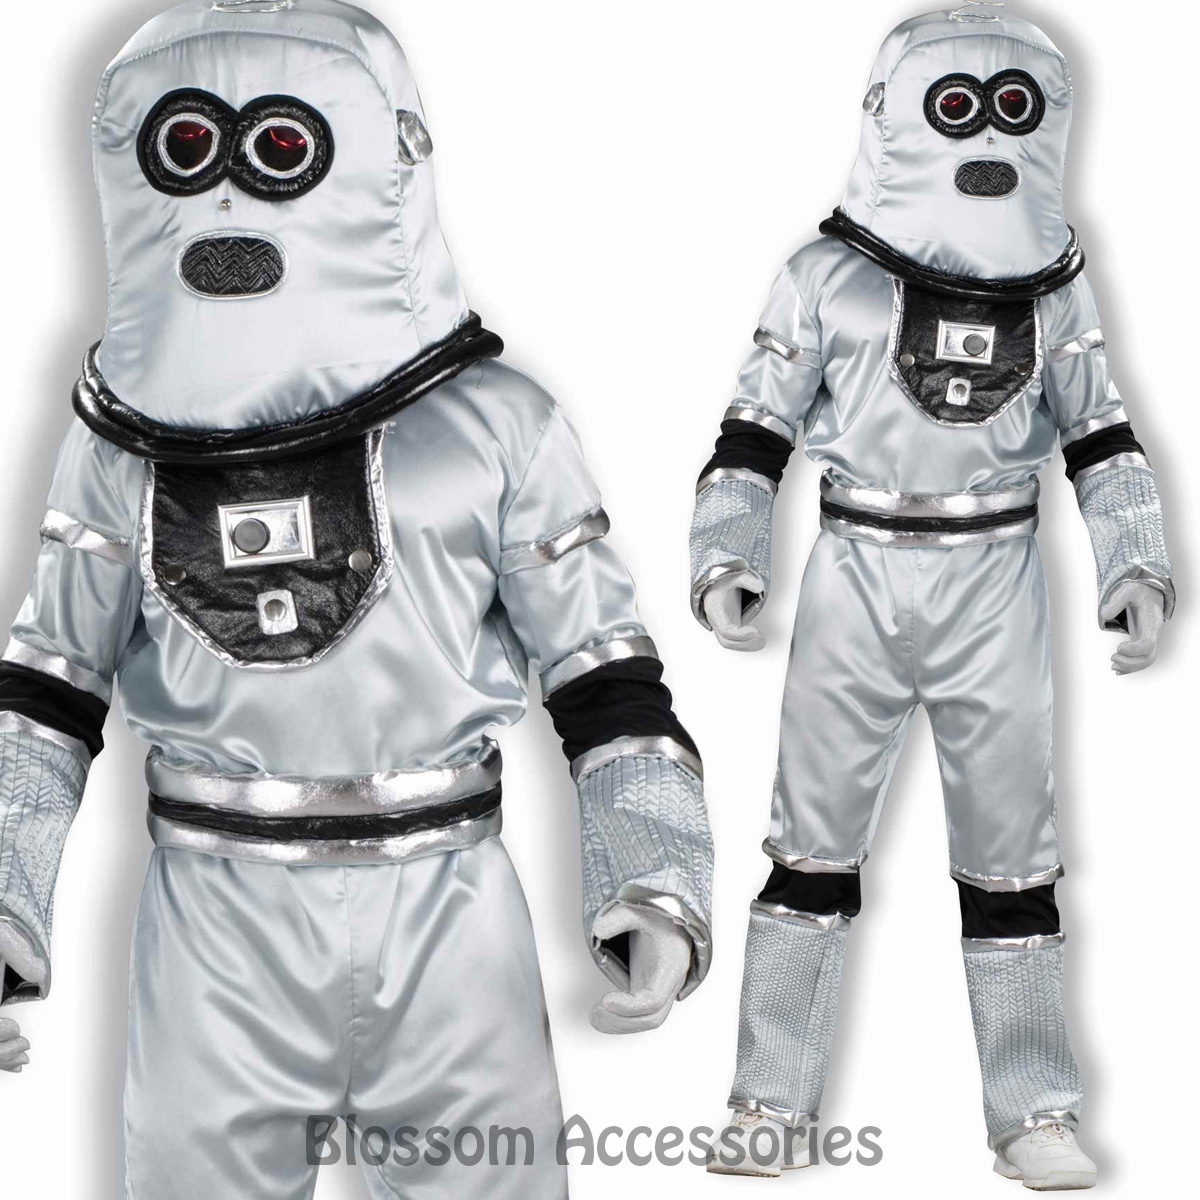 cl827 robot scifi silver space futuristic fancy dress